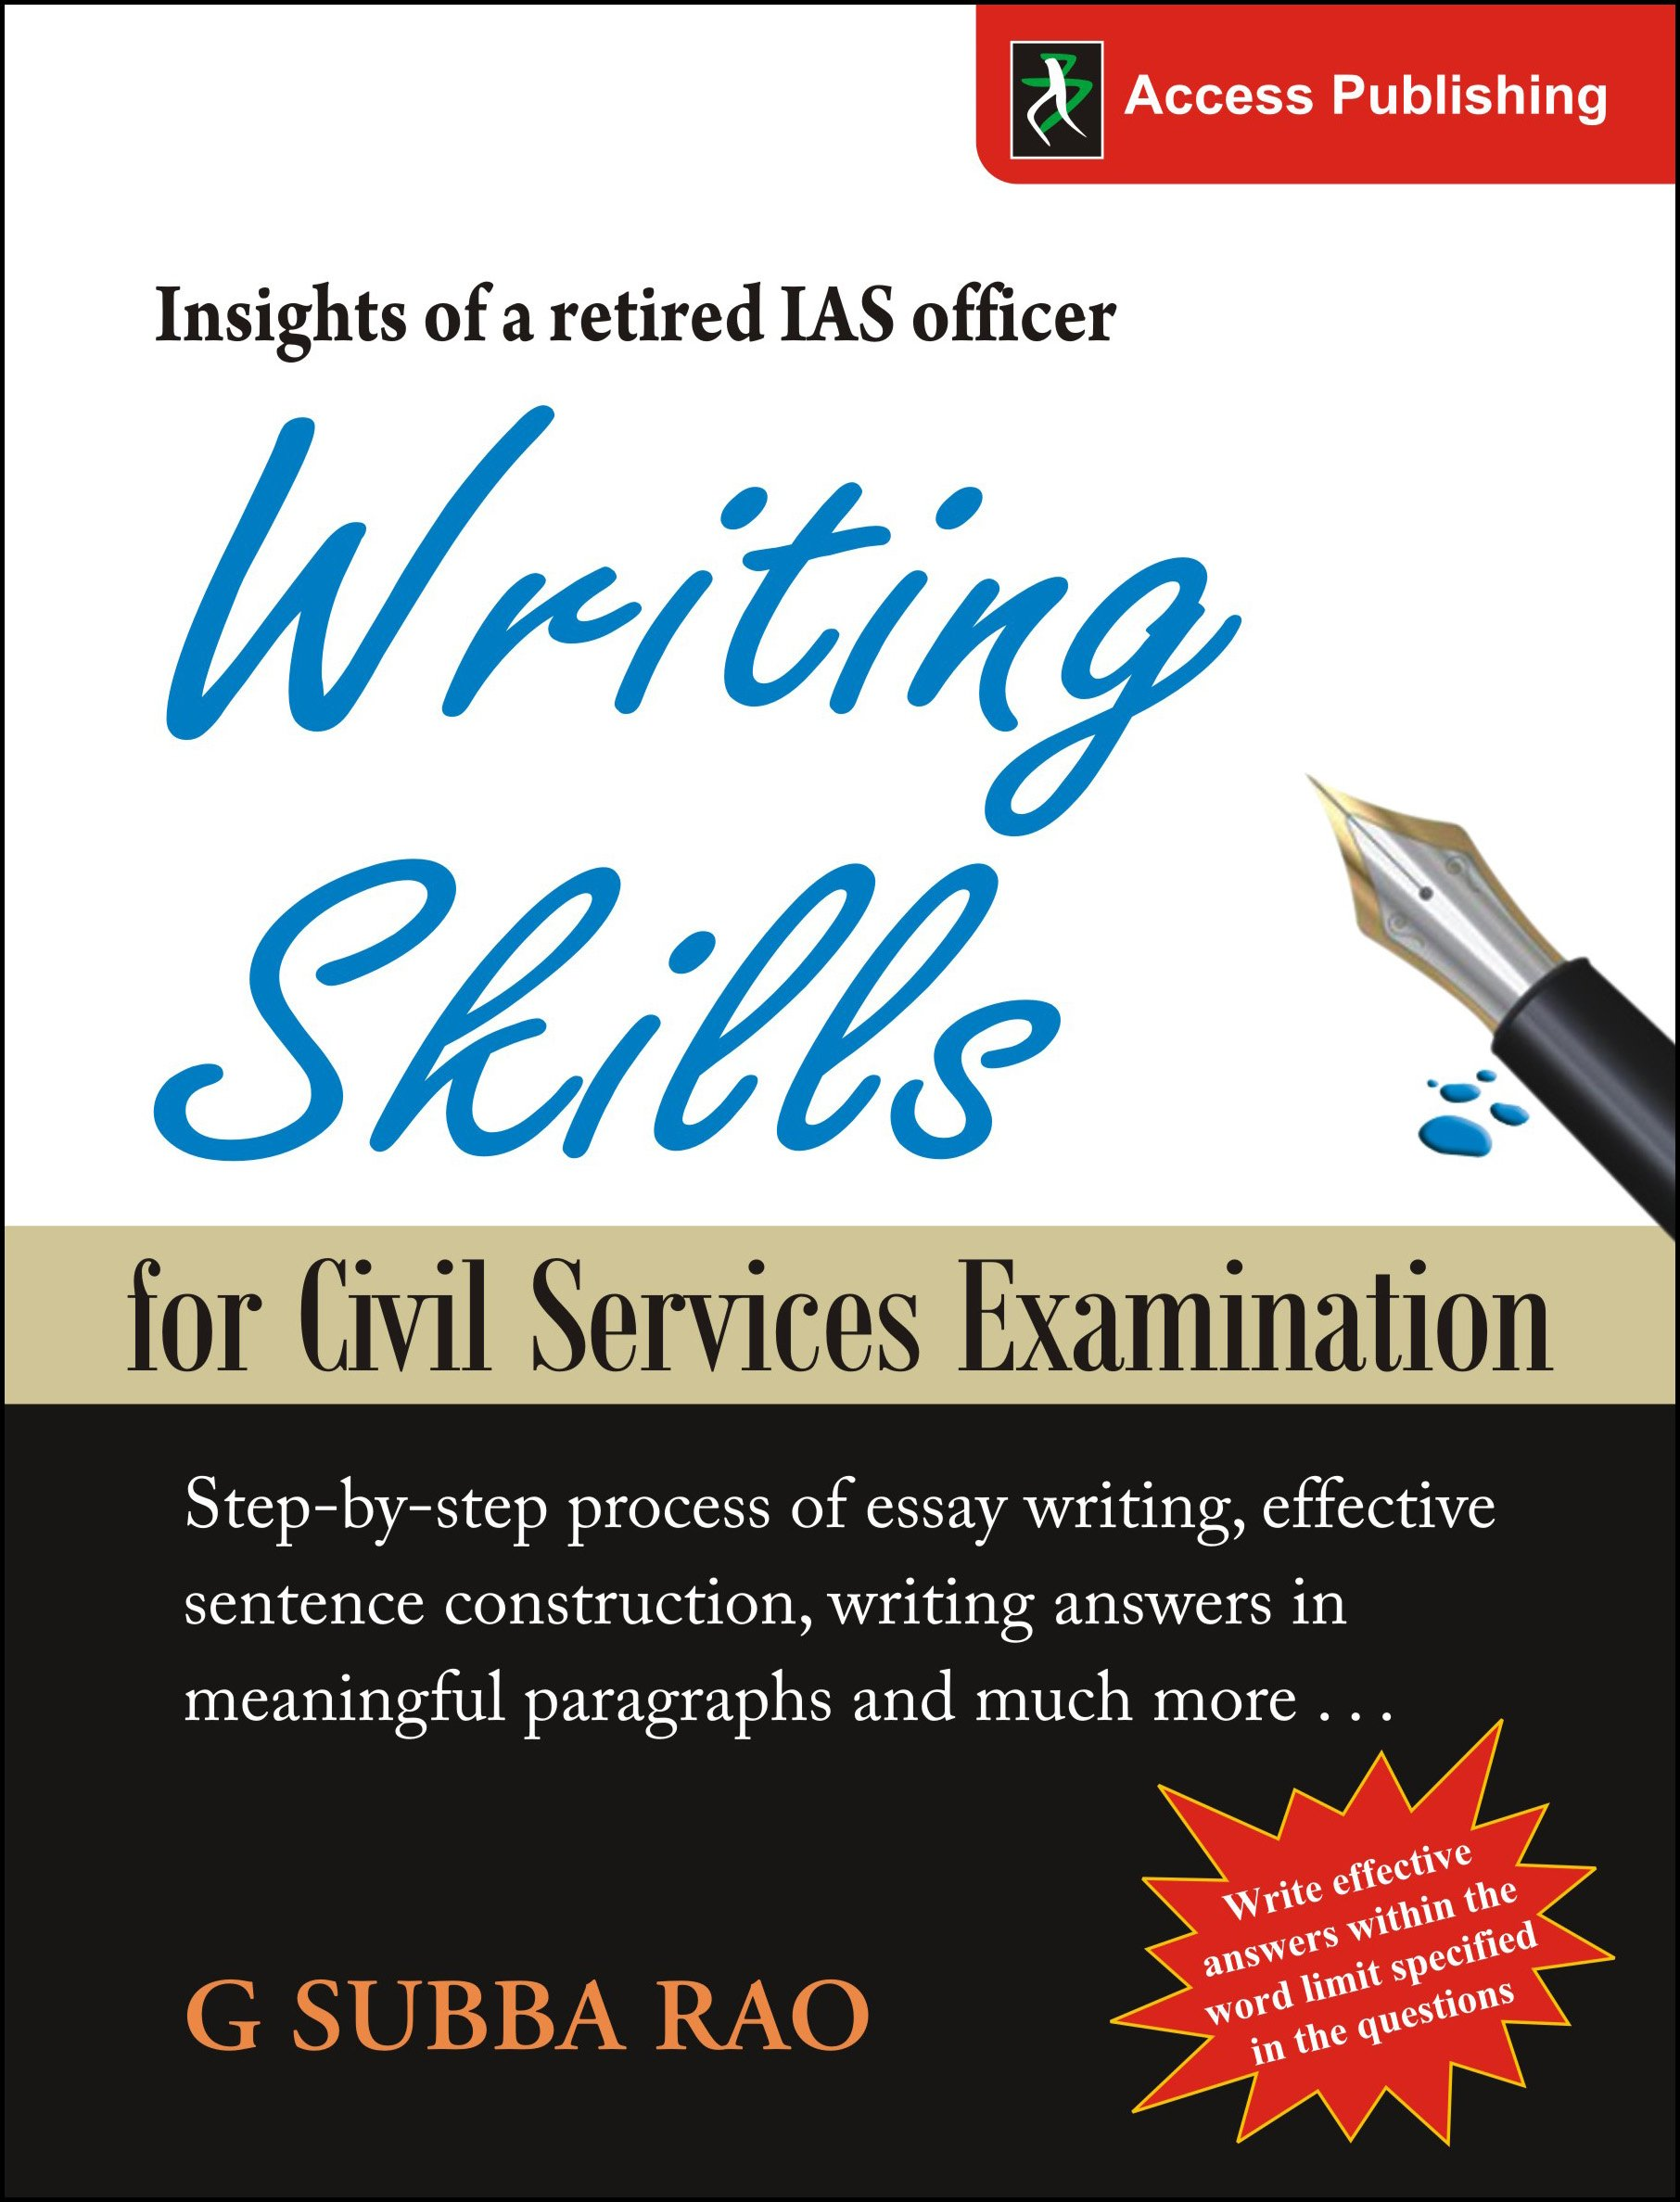 Civil service essay notification